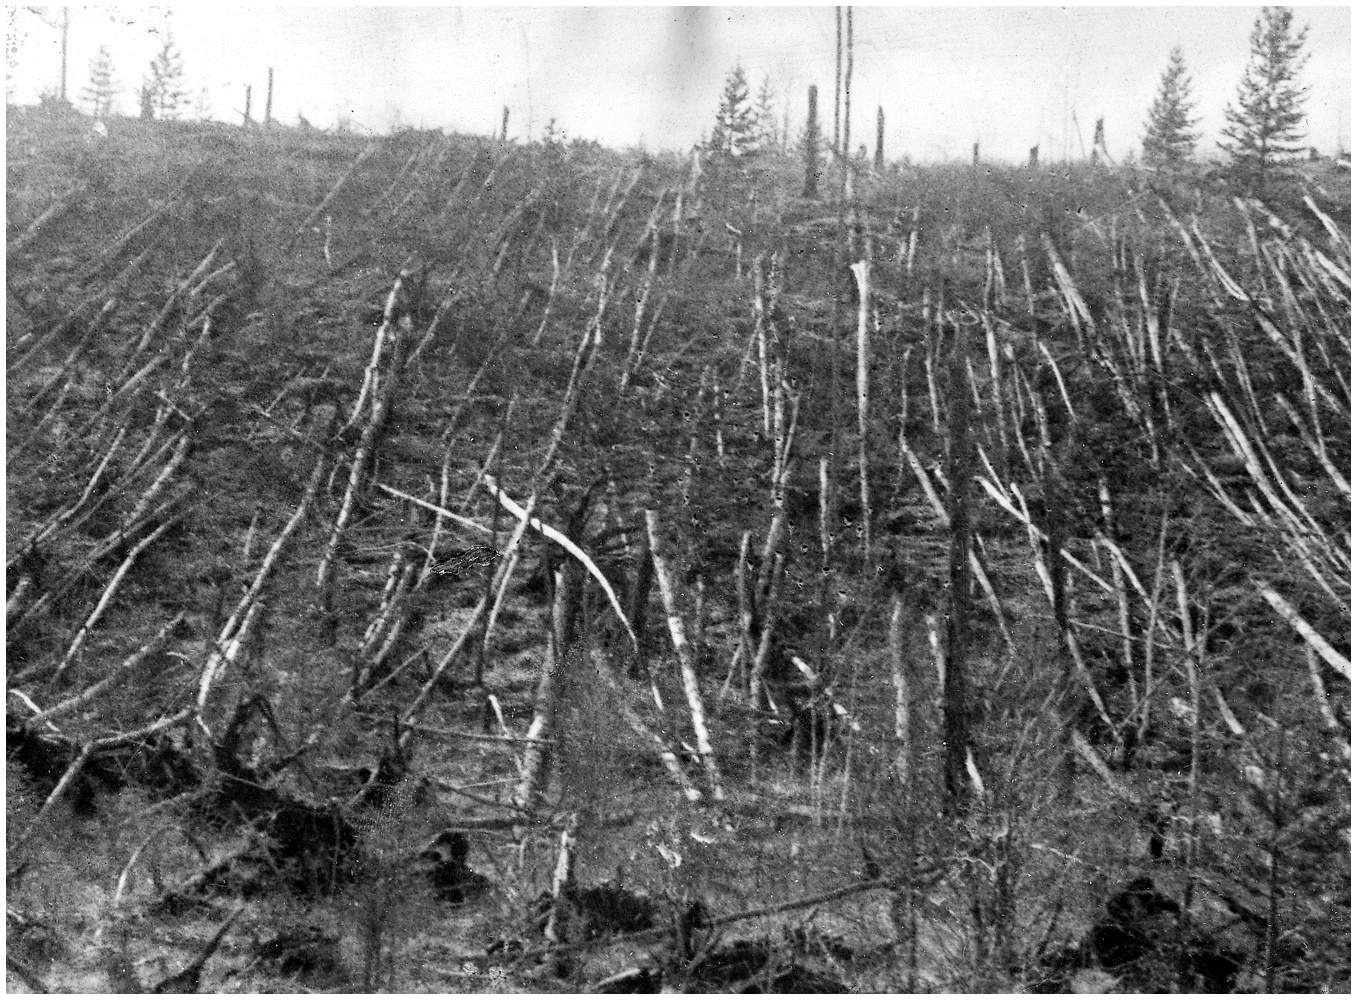 tunguska1 1908 in Pop Culture, AKA The Last Time the Chicago Cubs Won a World Series Title